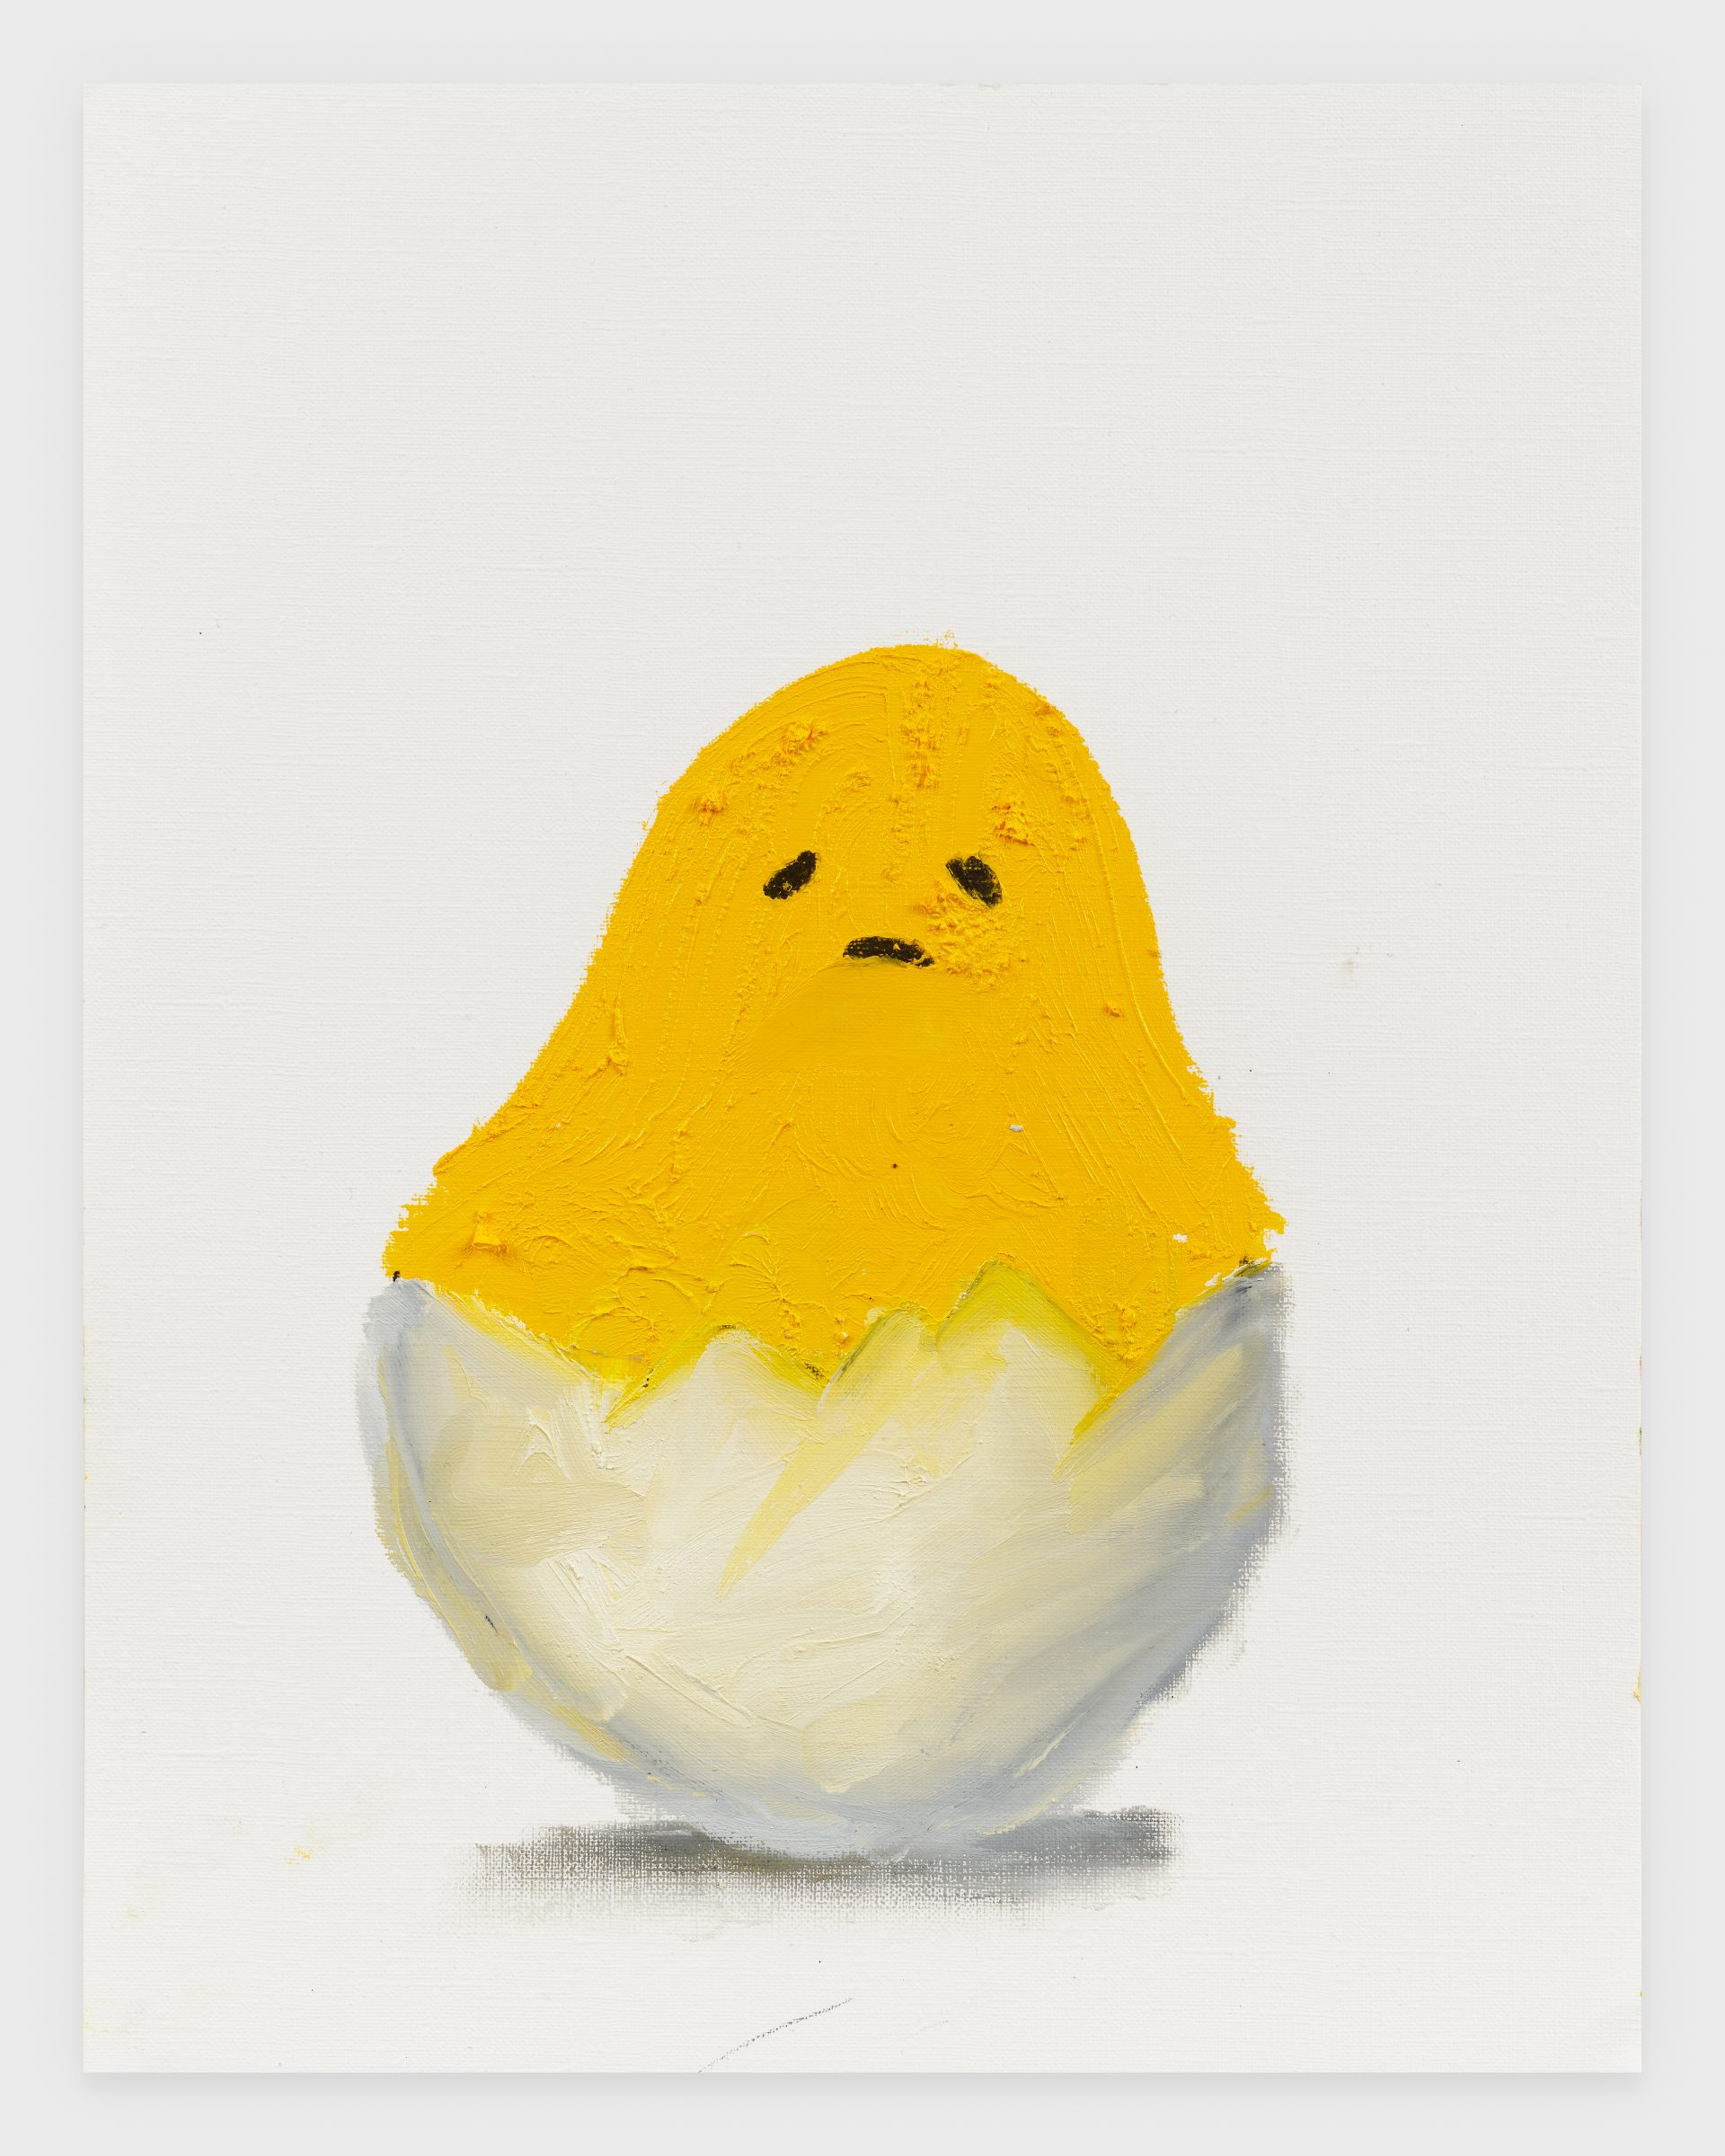 Gudetama, 2020, Oil stick on archival paper, 11 x 14 inches